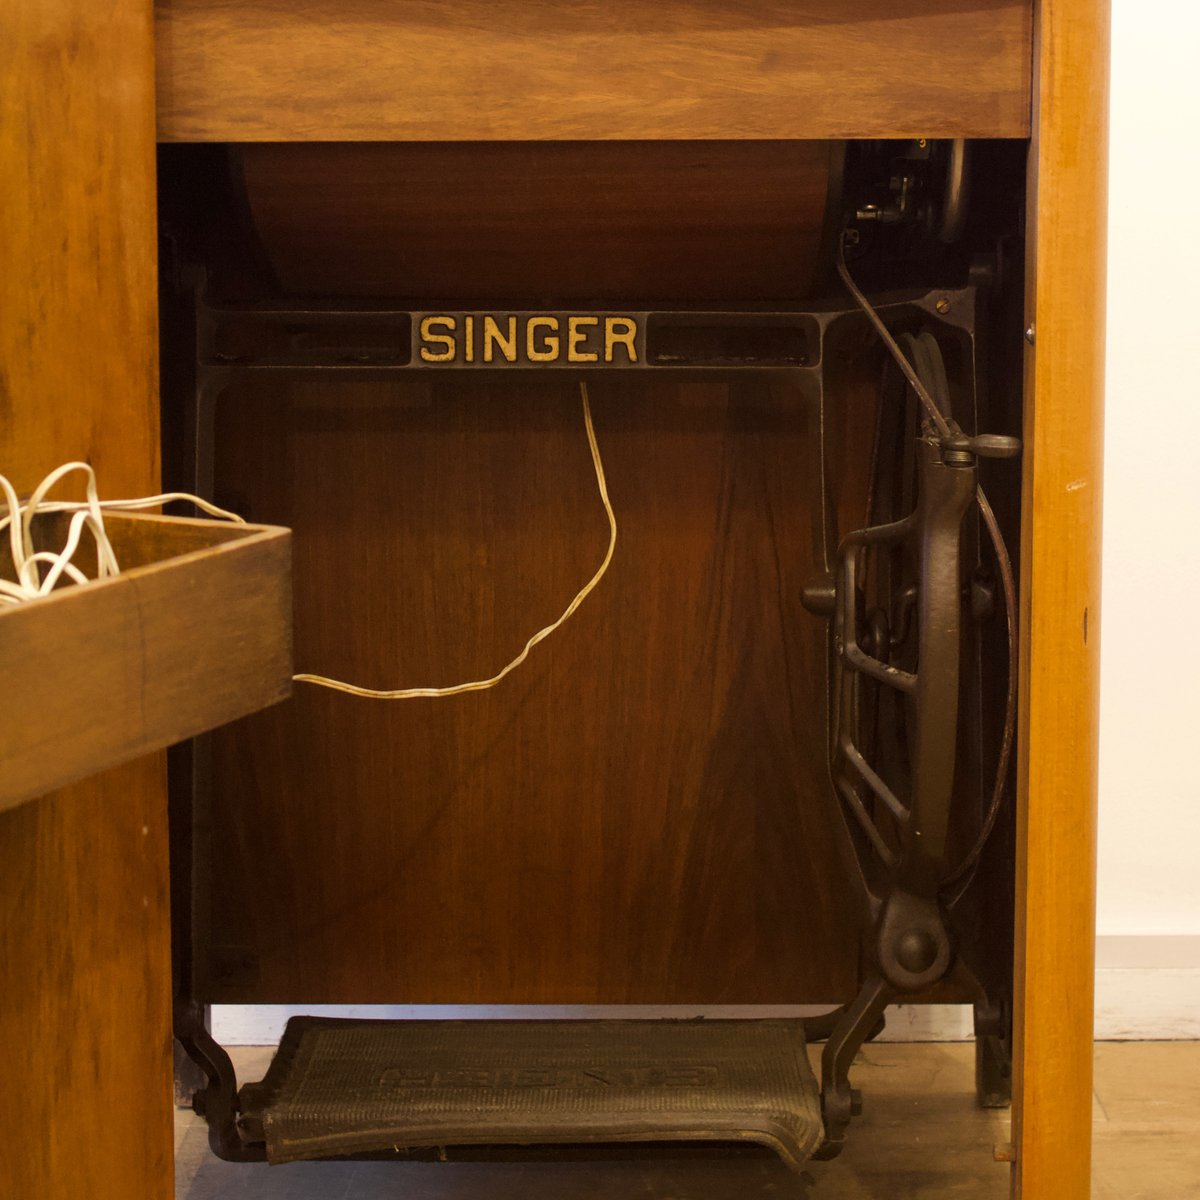 Sewing Machine Cabinet From Singer 1950s For Sale At Pamono